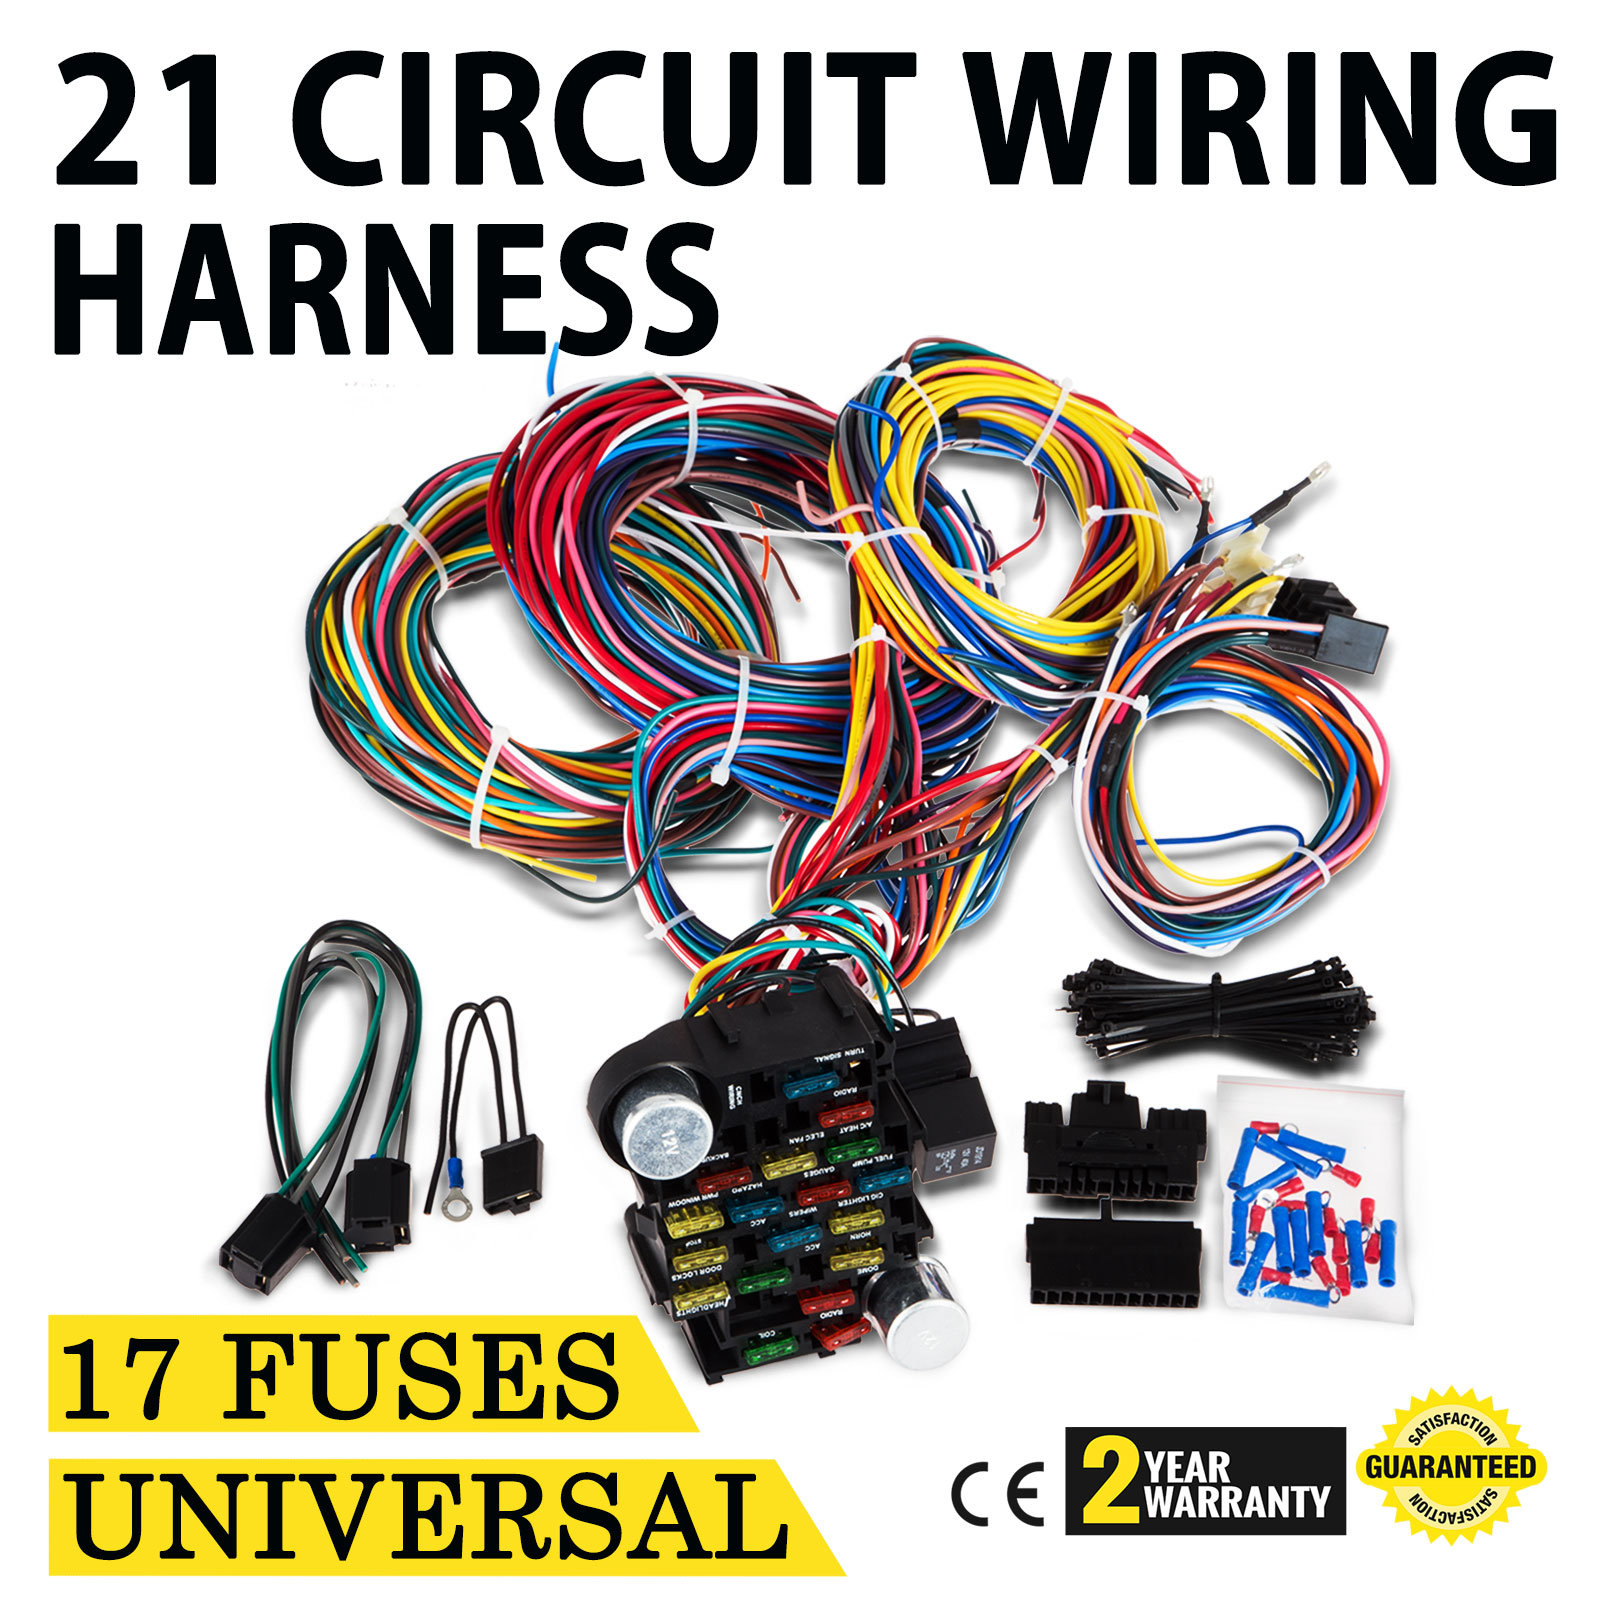 21 Circuit Wiring Harness Universal Wire Door Locks Install Air Conditioner Conditioning